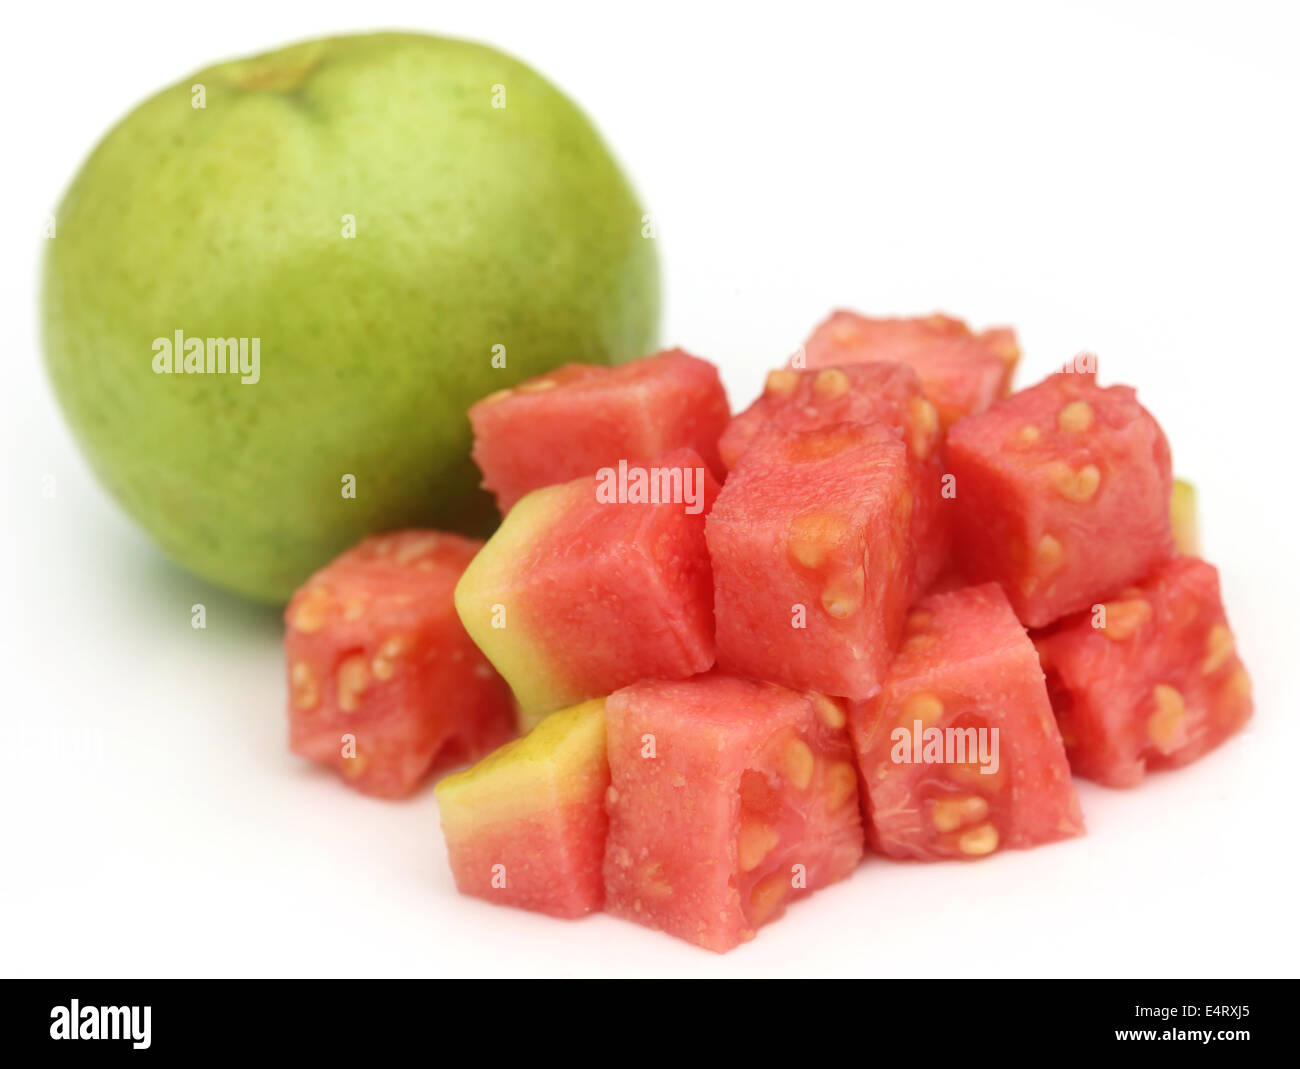 Red Guava Stock Photos & Red Guava Stock Images - Alamy